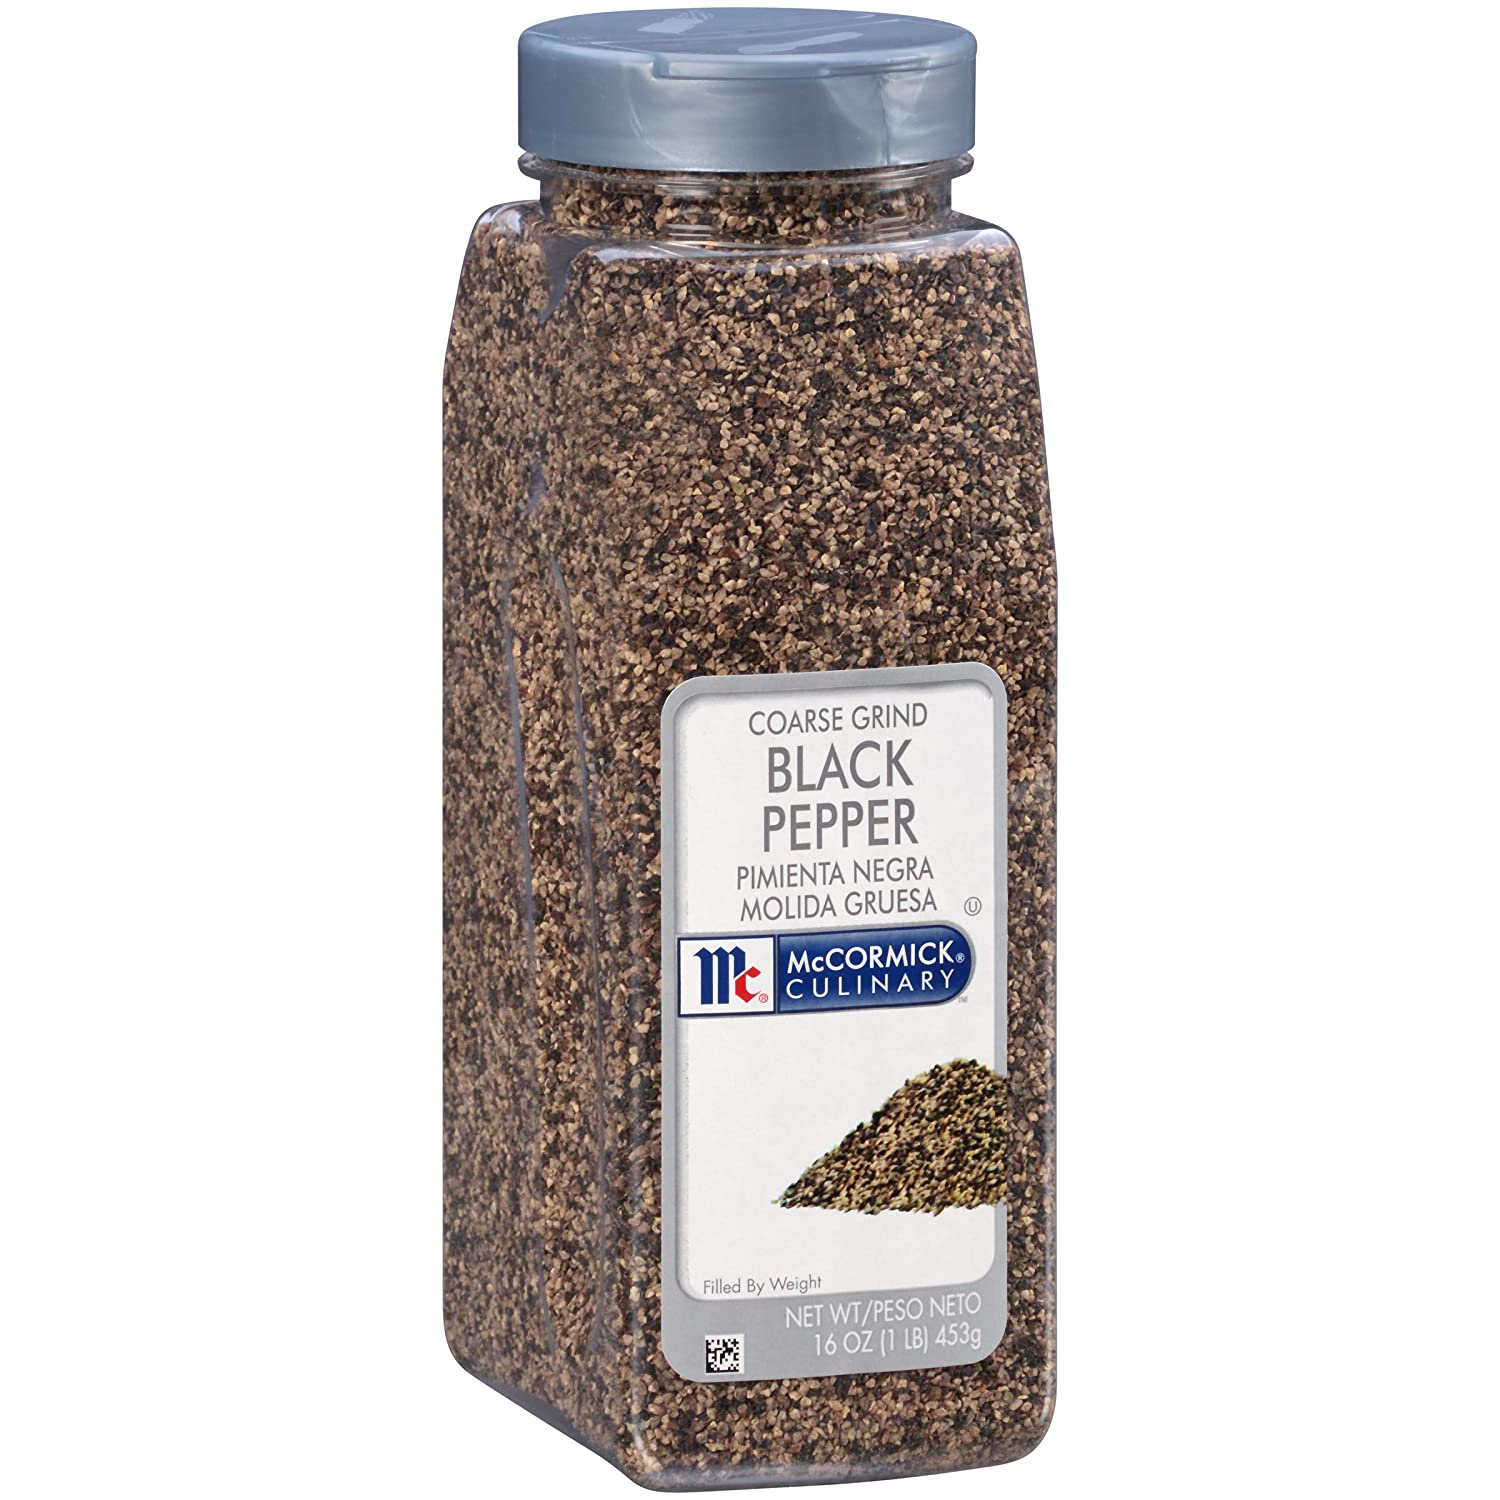 McCormick Culinary Coarse Ground Black Pepper, 1 lb